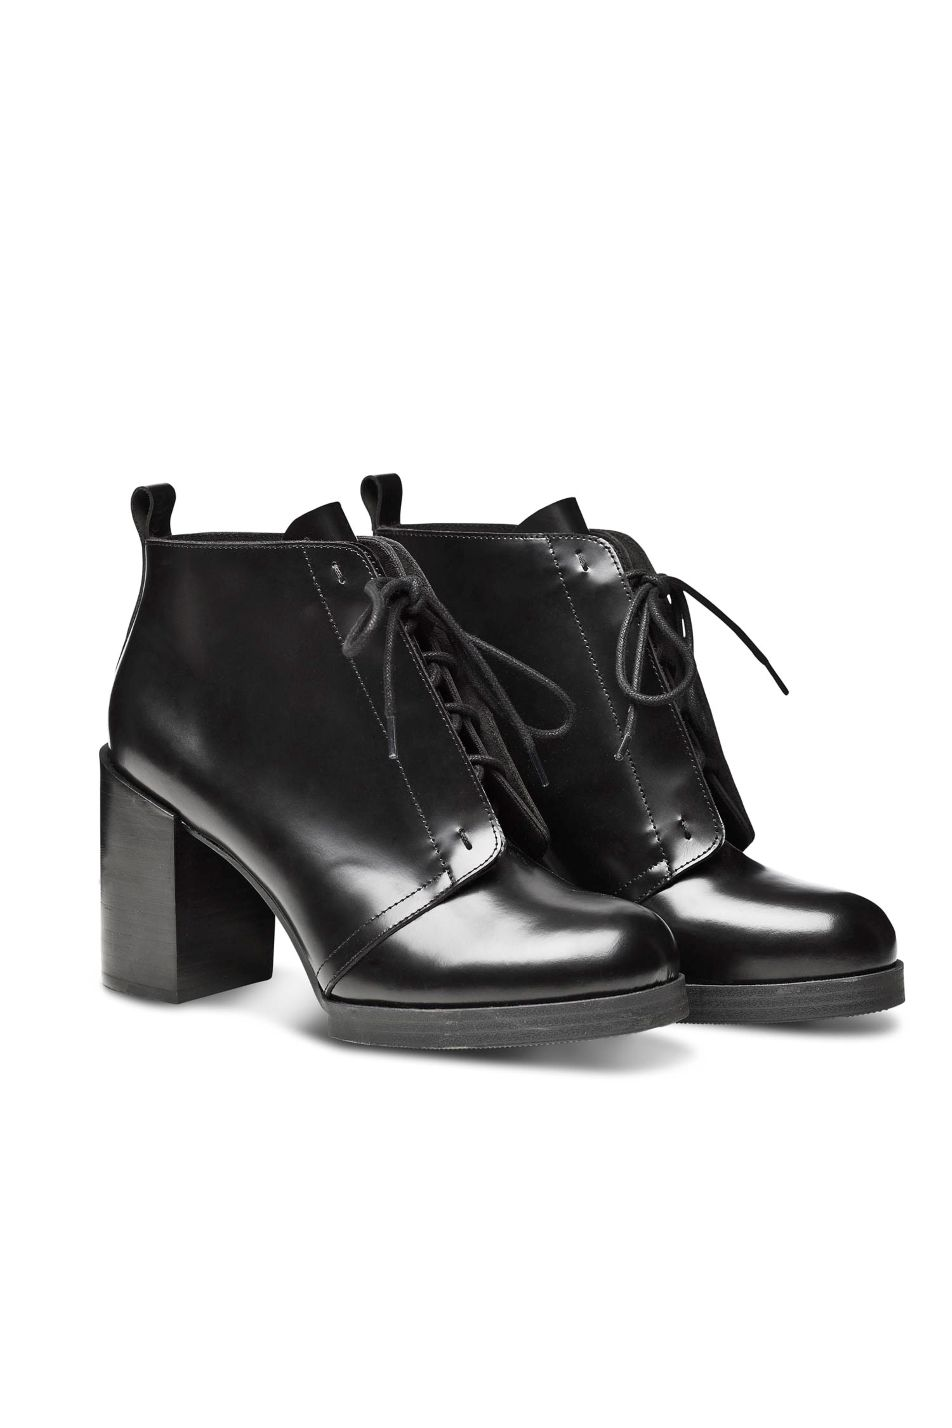 "<p>Cheap Monday Layer Boot Hide, £120; <a href=""http://www.cheapmonday.com/shop-women/shoes/layer-boot-hide/4978378-7086324.1?image=5012671#7086326"">cheapmonday.com</a></p>"